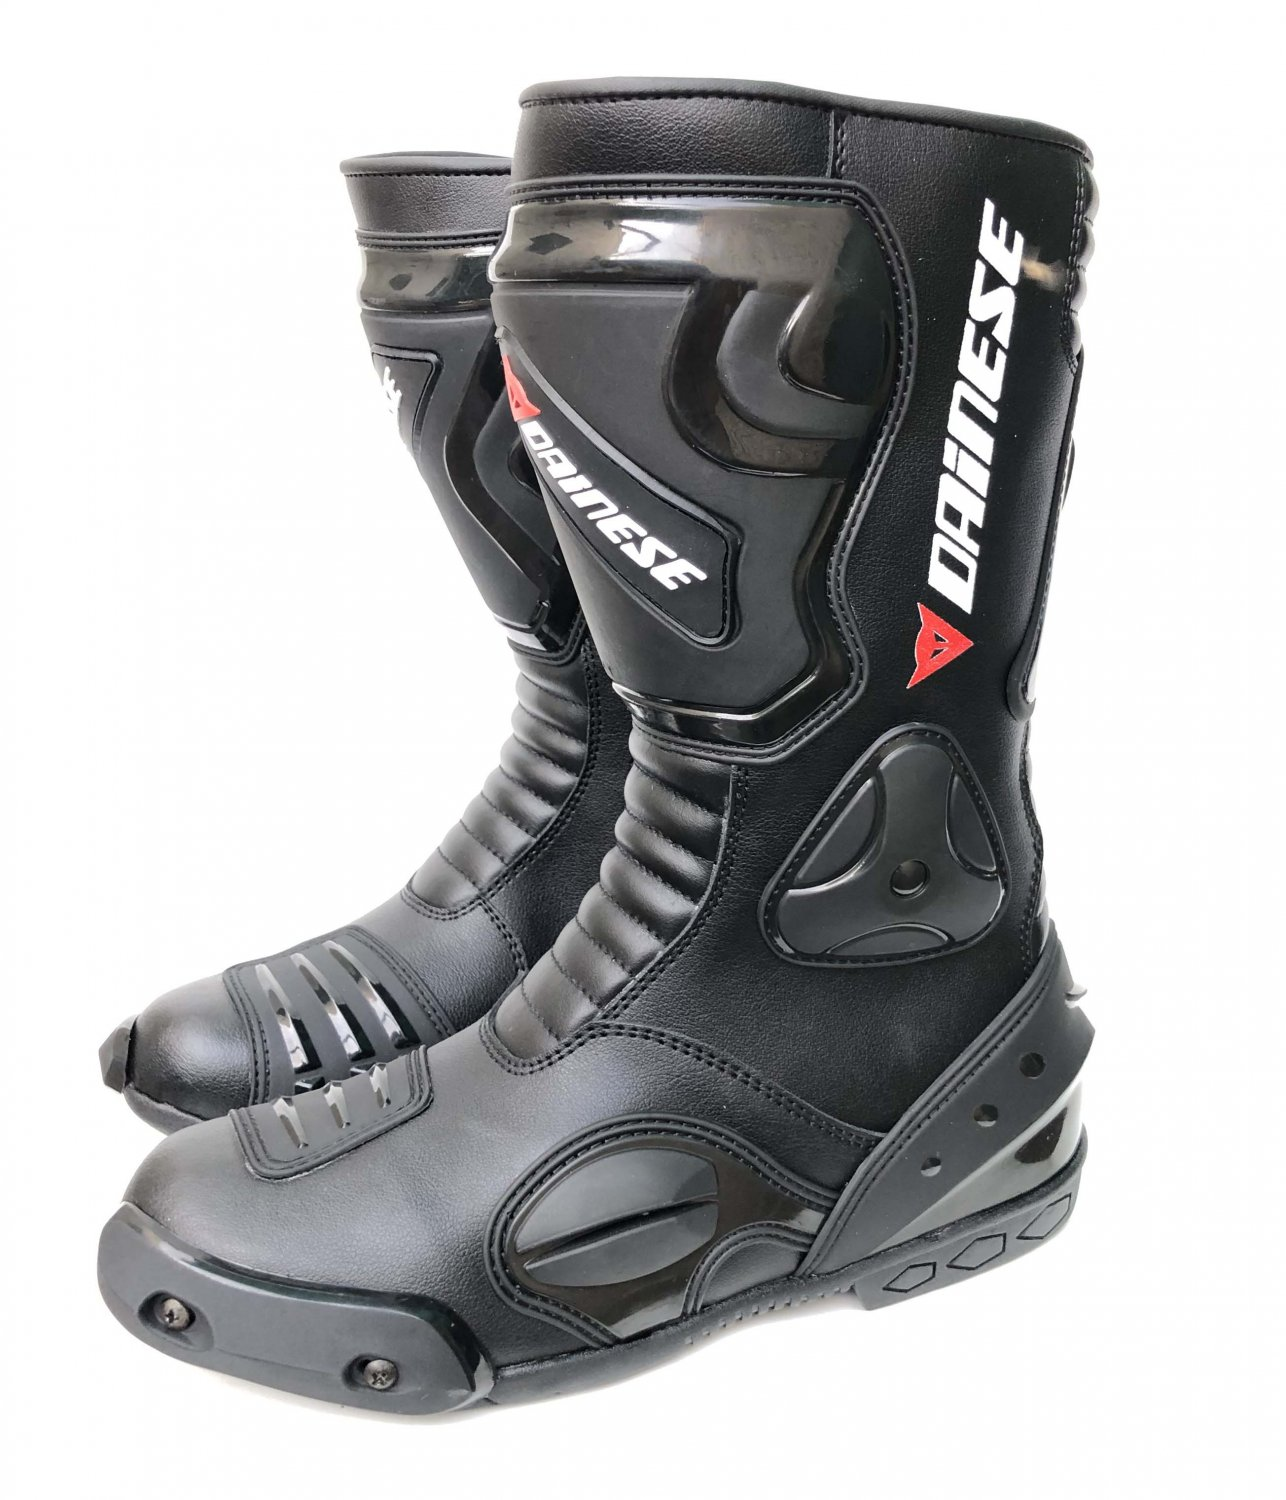 Dainese Motorbike Racing Shoes Made of  High quality Leather All Size Available